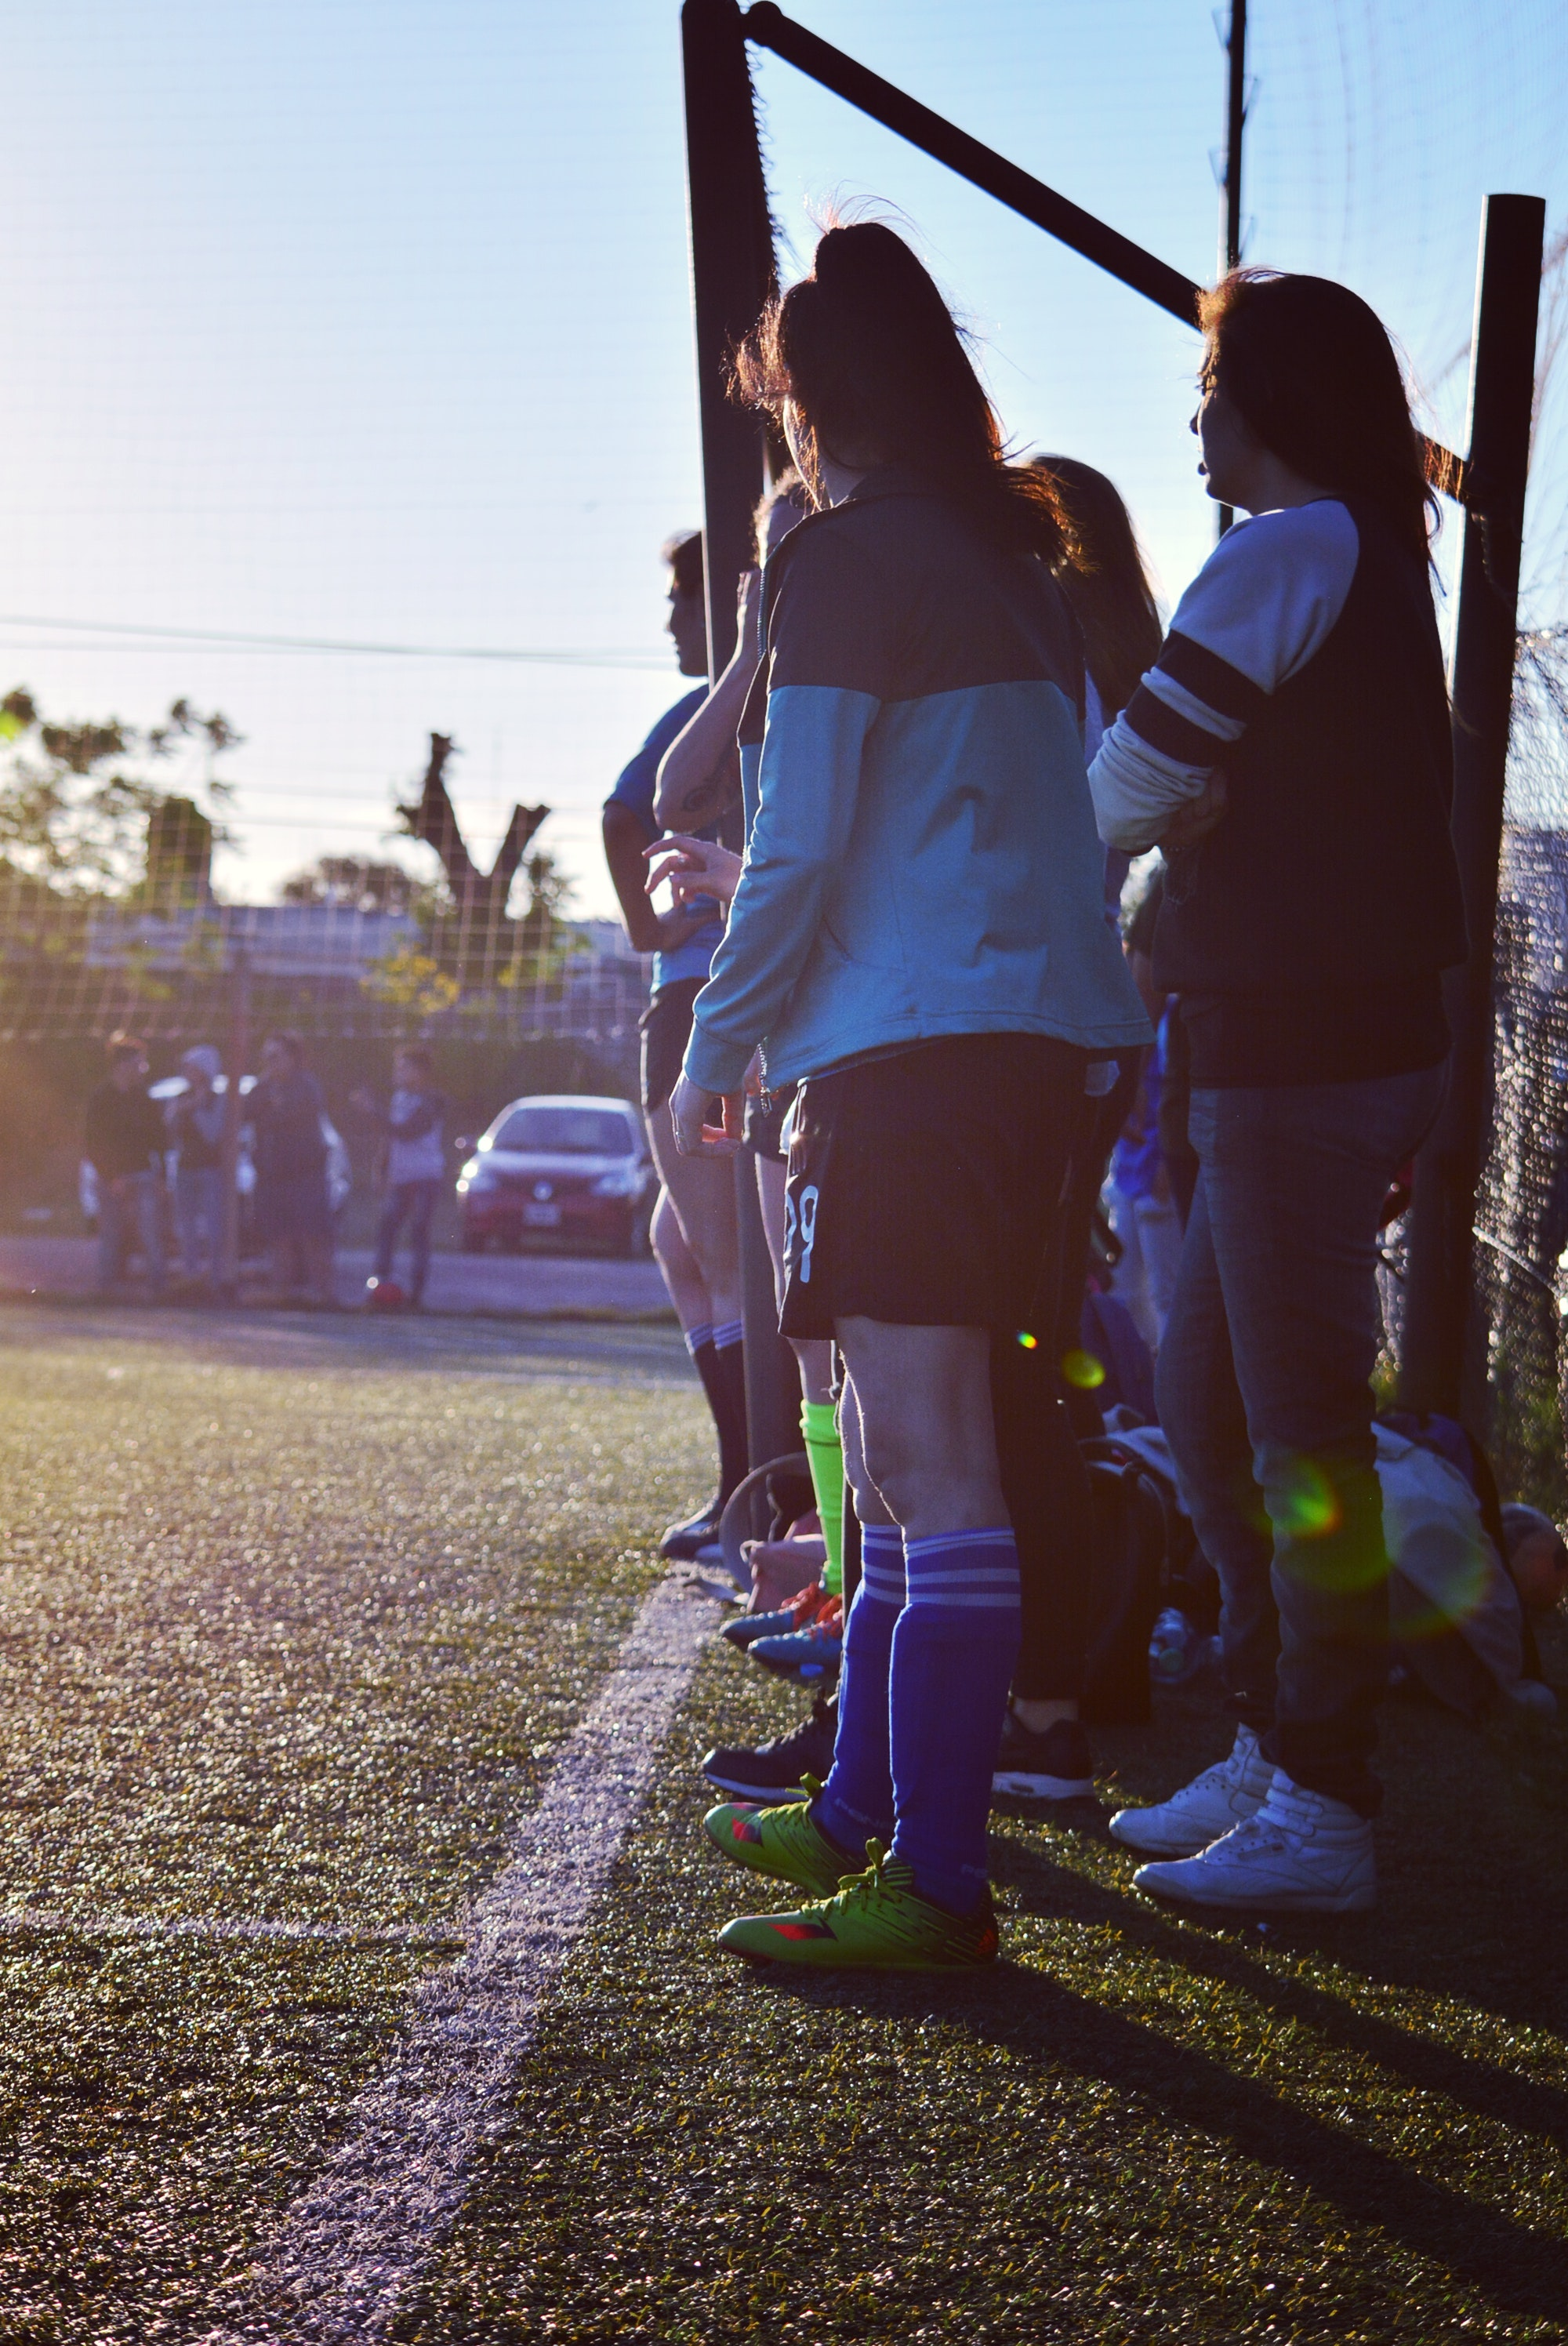 Women Wearing Pair of Blue High-socks, Soccer images, Soccer, Shoes, Recreation, HQ Photo